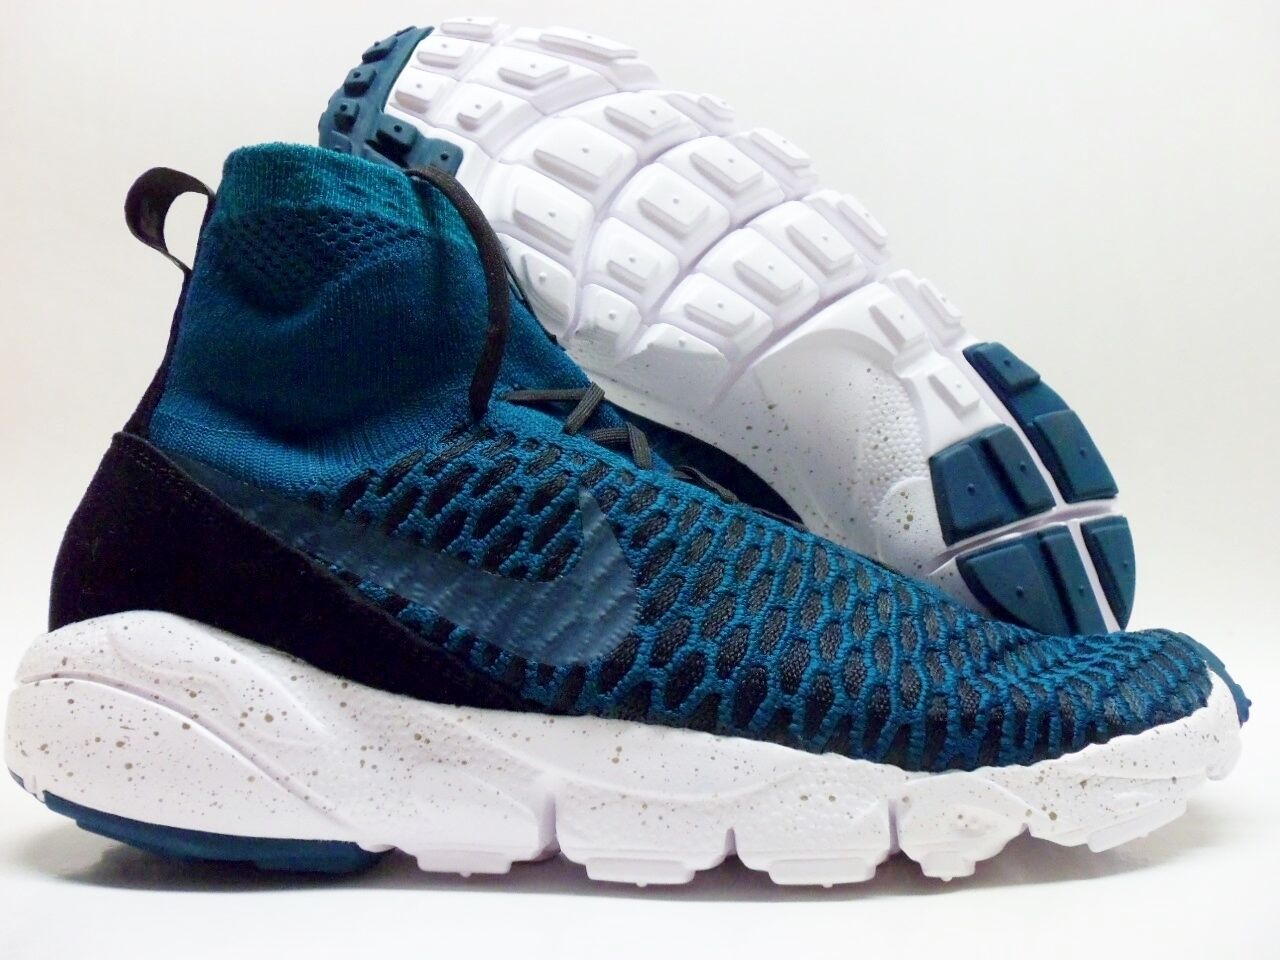 NIKE AIR FOOTSCAPE MAGISTA FK FC FLYKNIT TURQUOISE SIZE MEN'S 11 [830600-300]